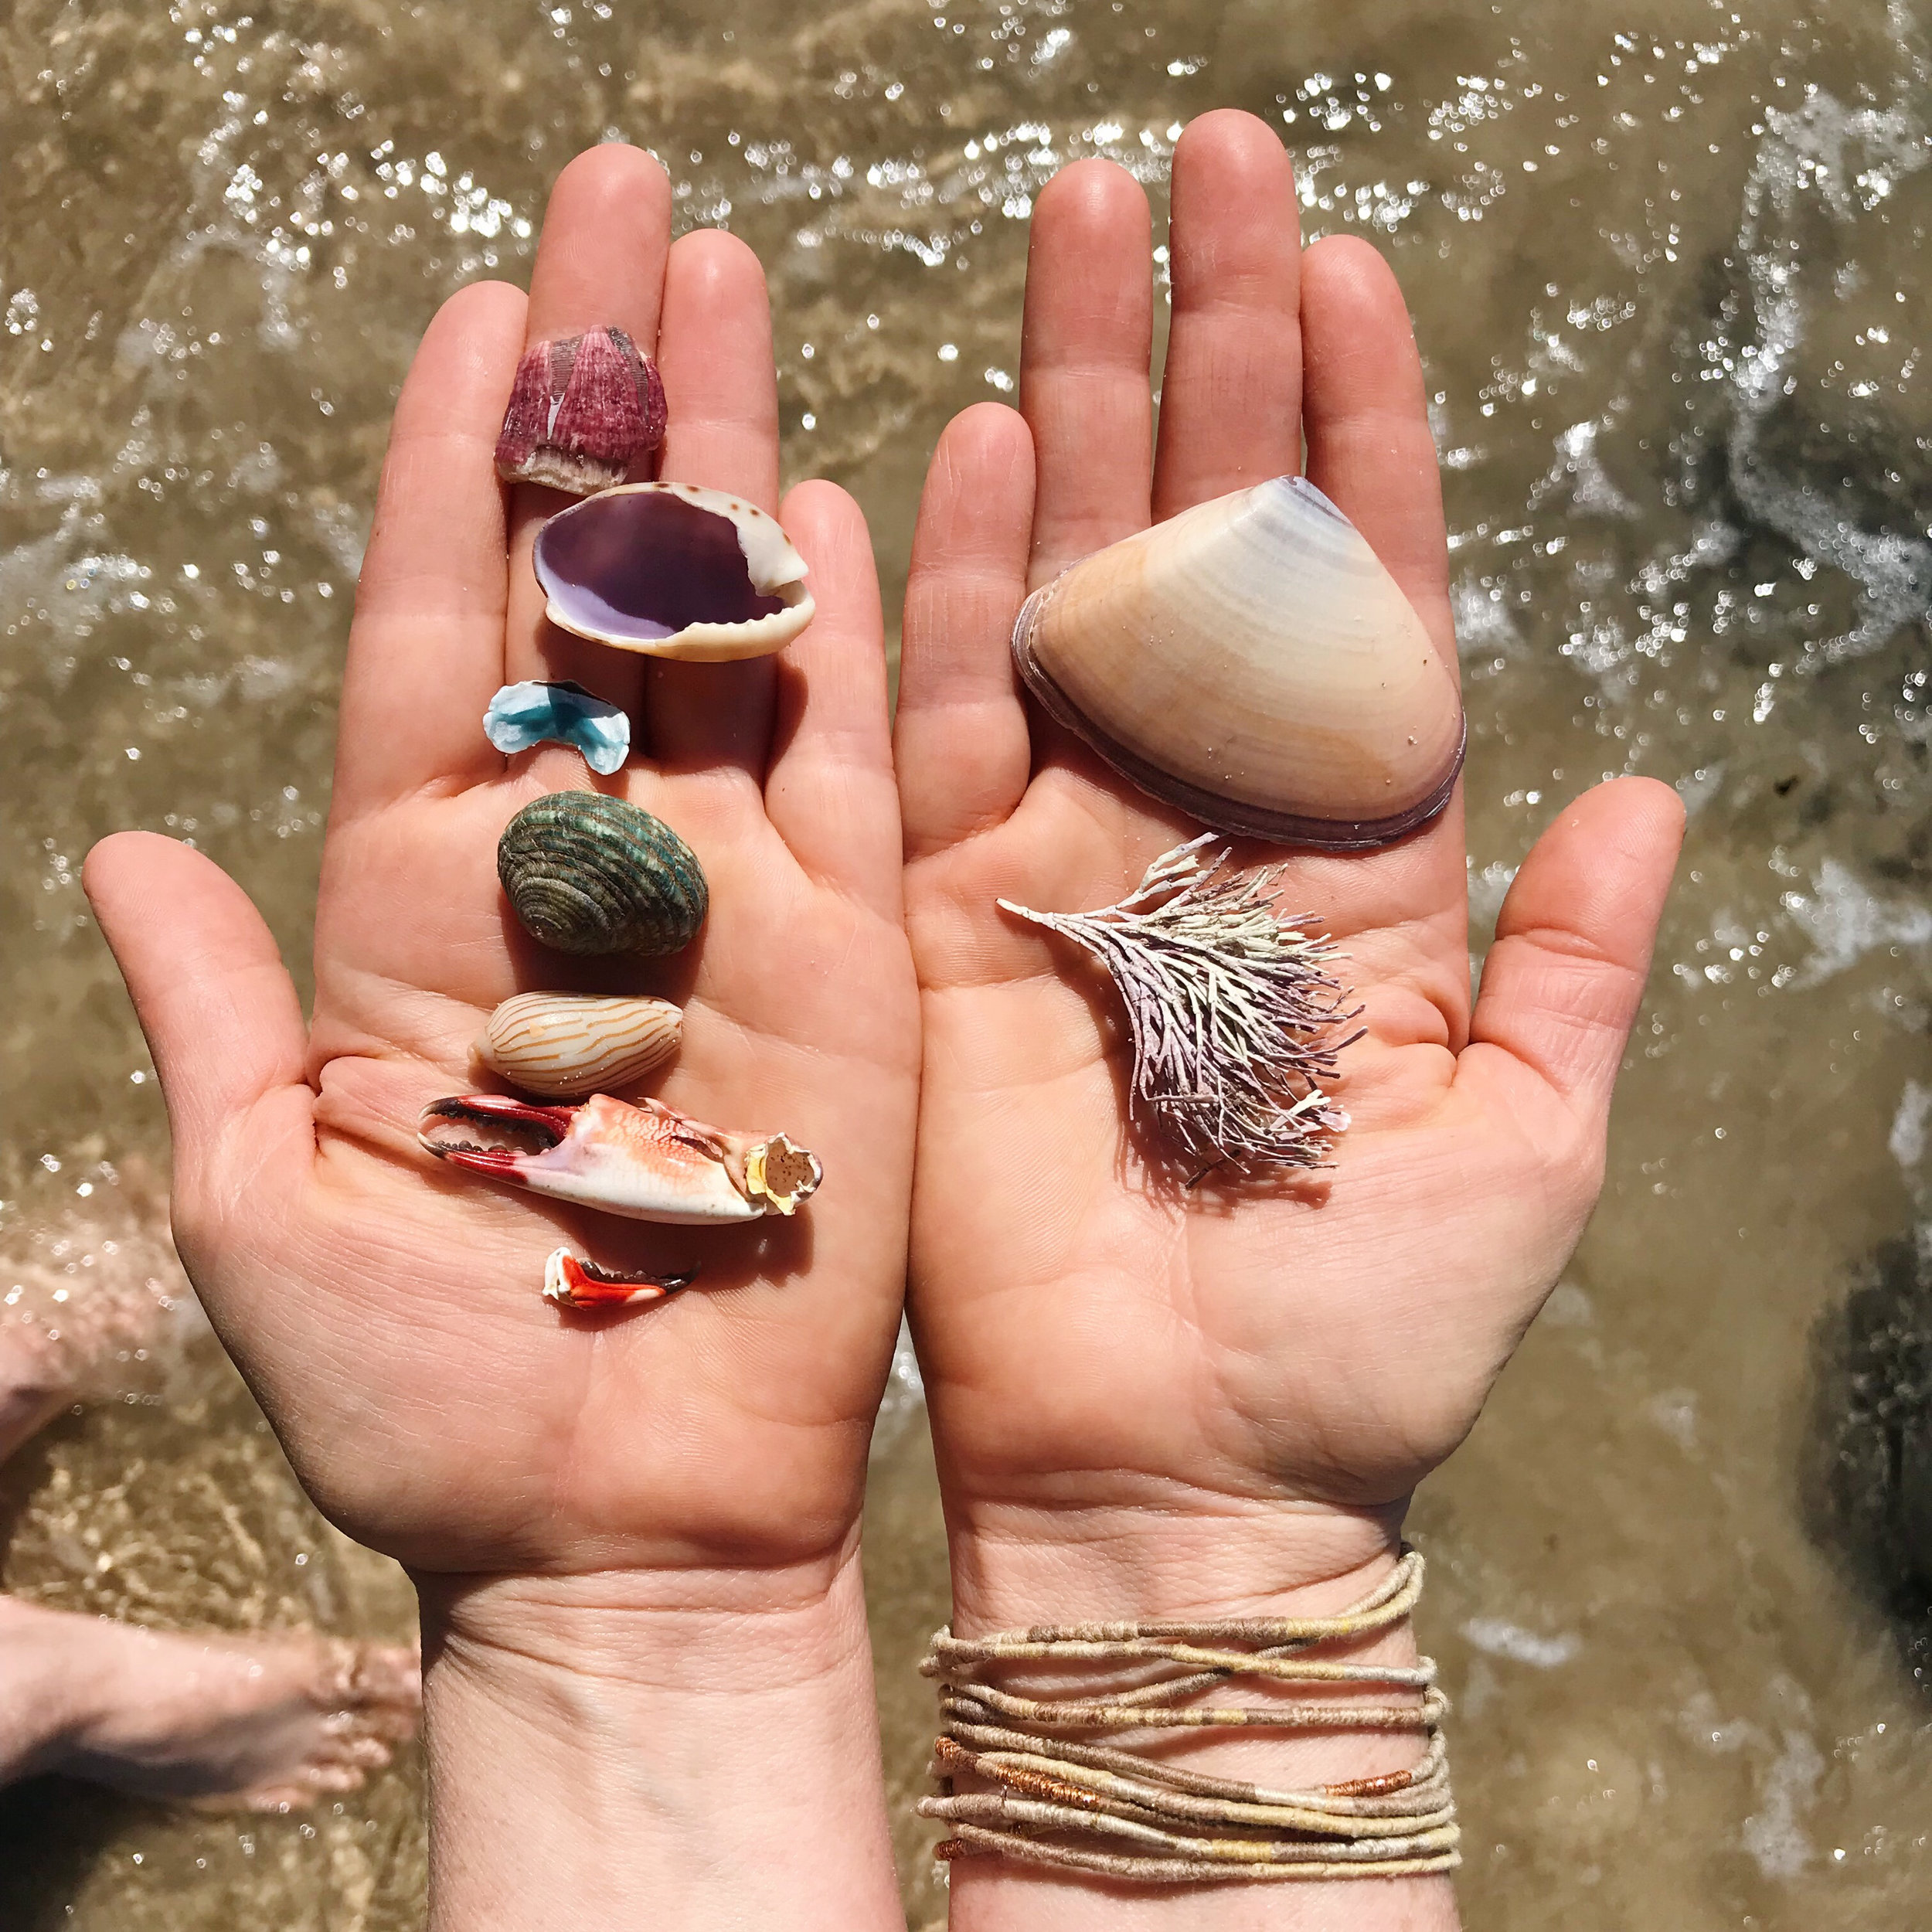 Petalplum blog Creative mamas - finding your voice in the family noise. Shells on hands at the beach